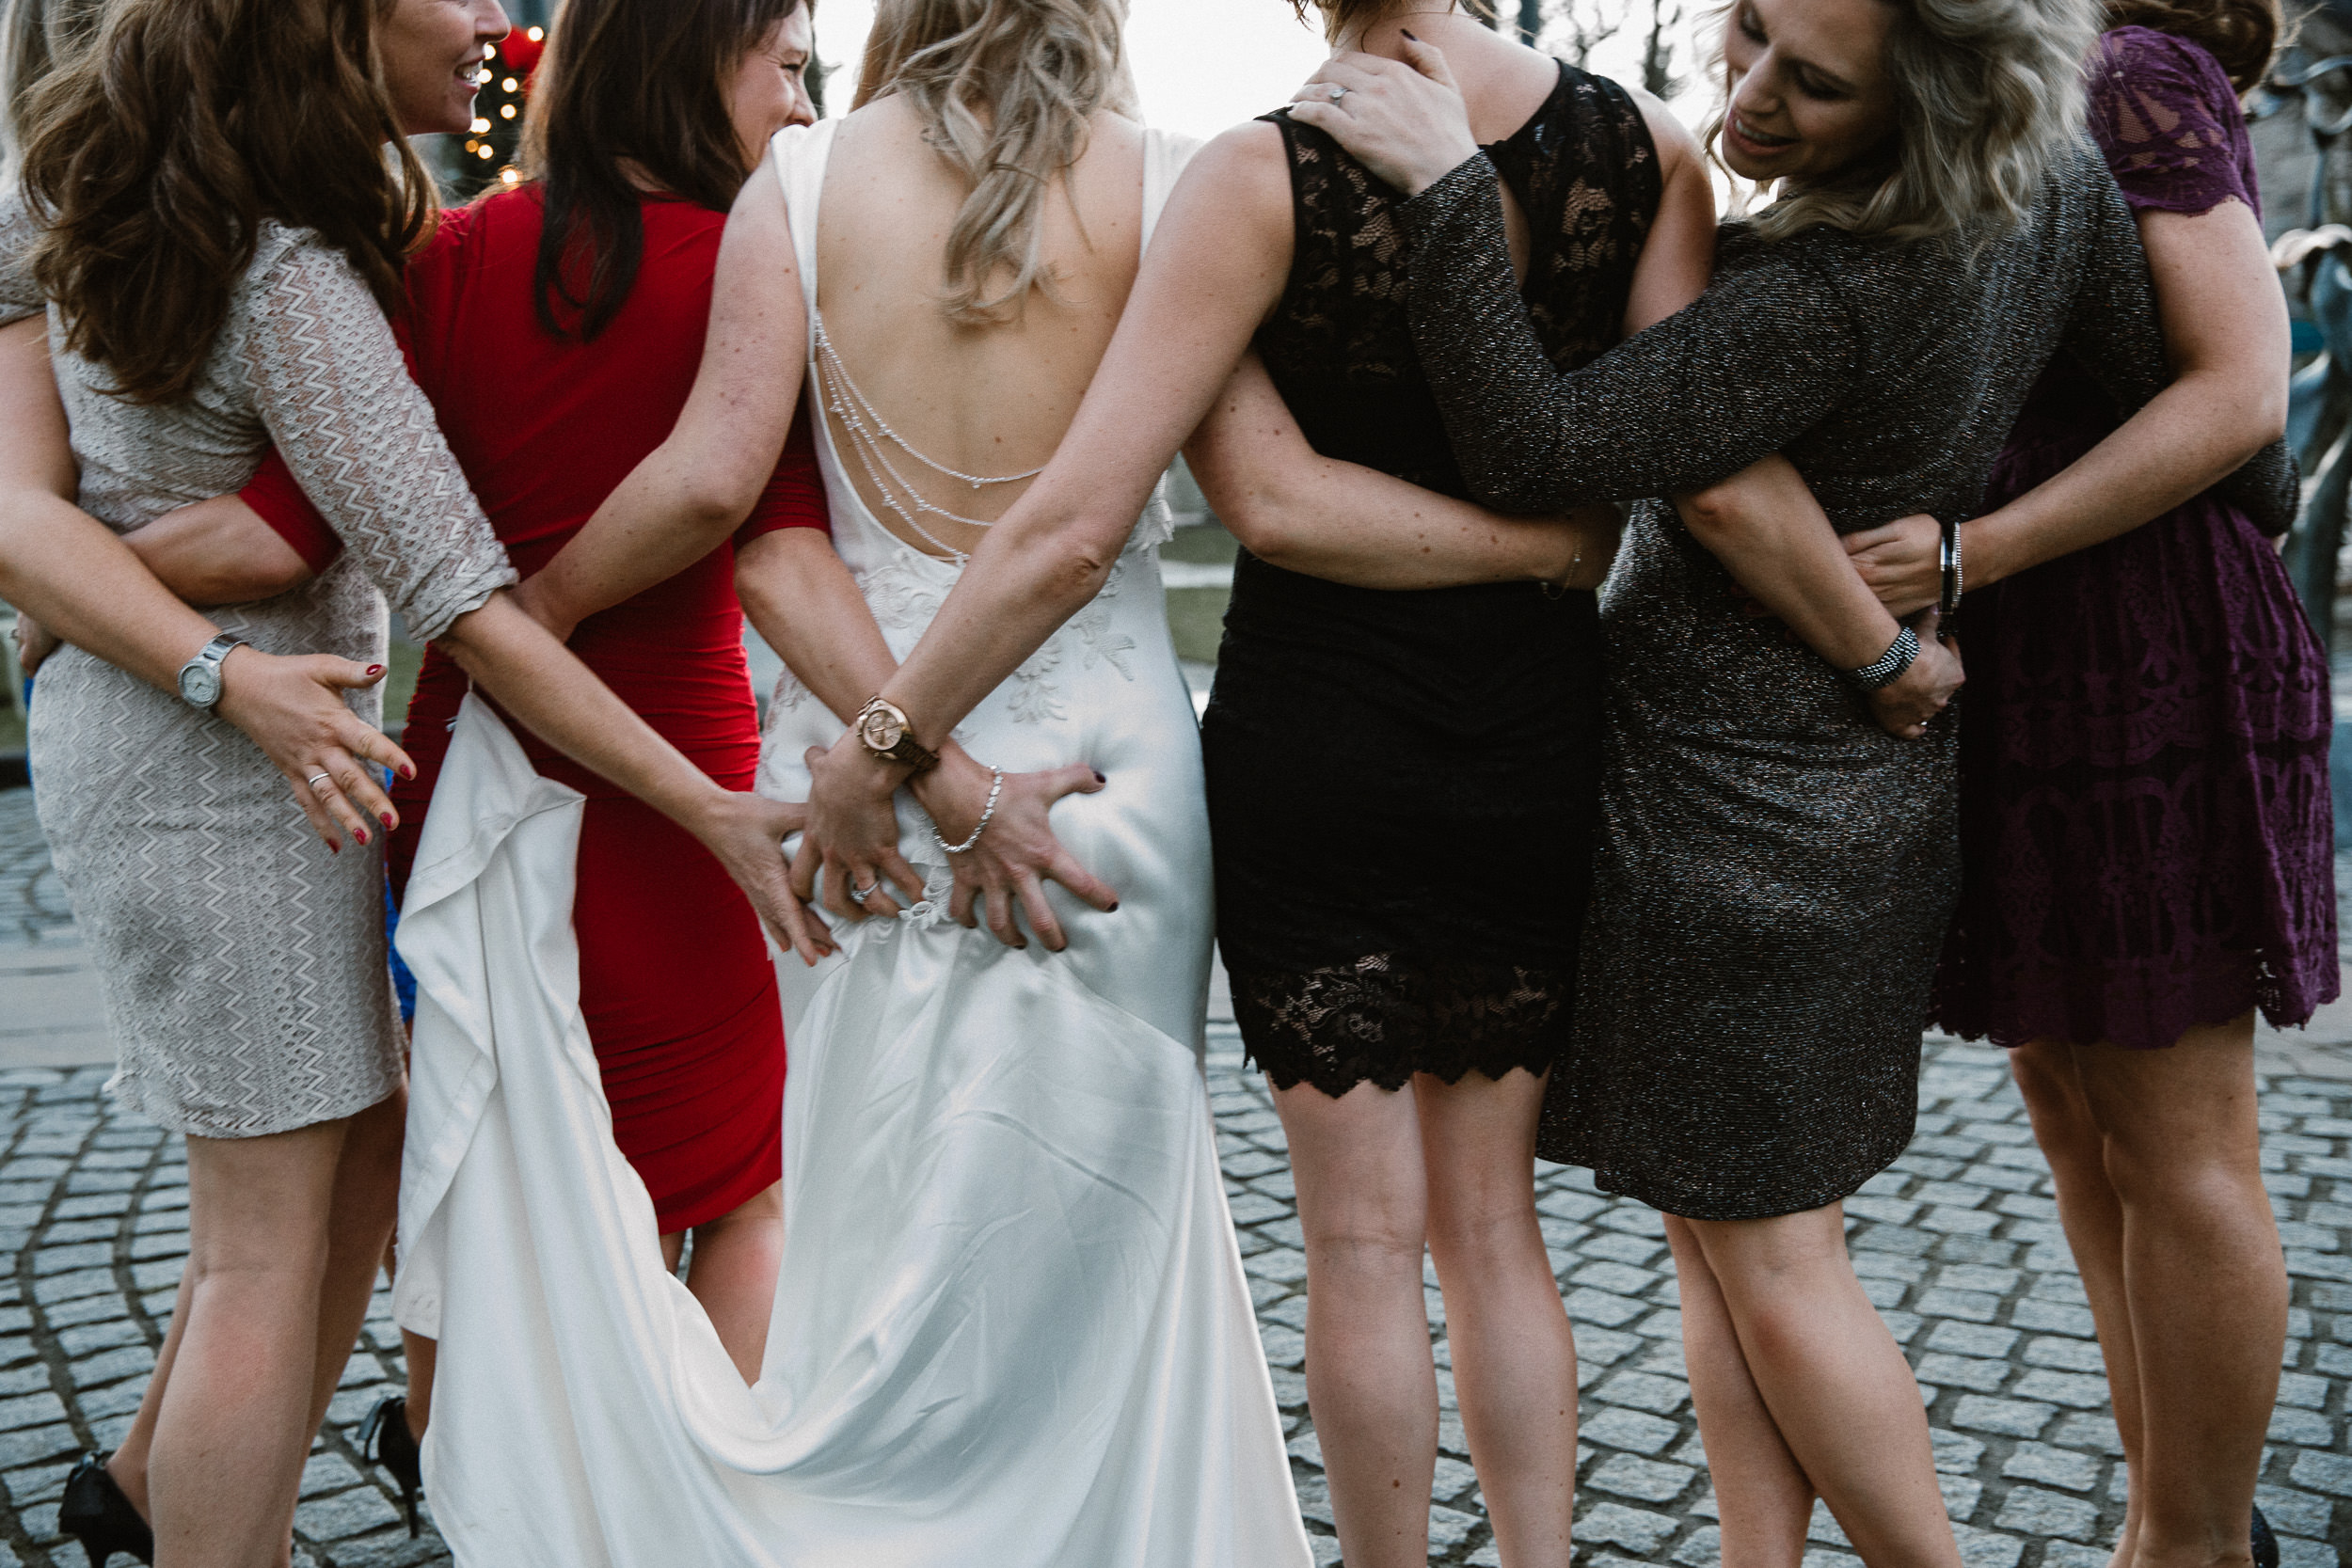 clairebyrnephotography-fun-wedding-photographer-ireland-creative-346.jpg